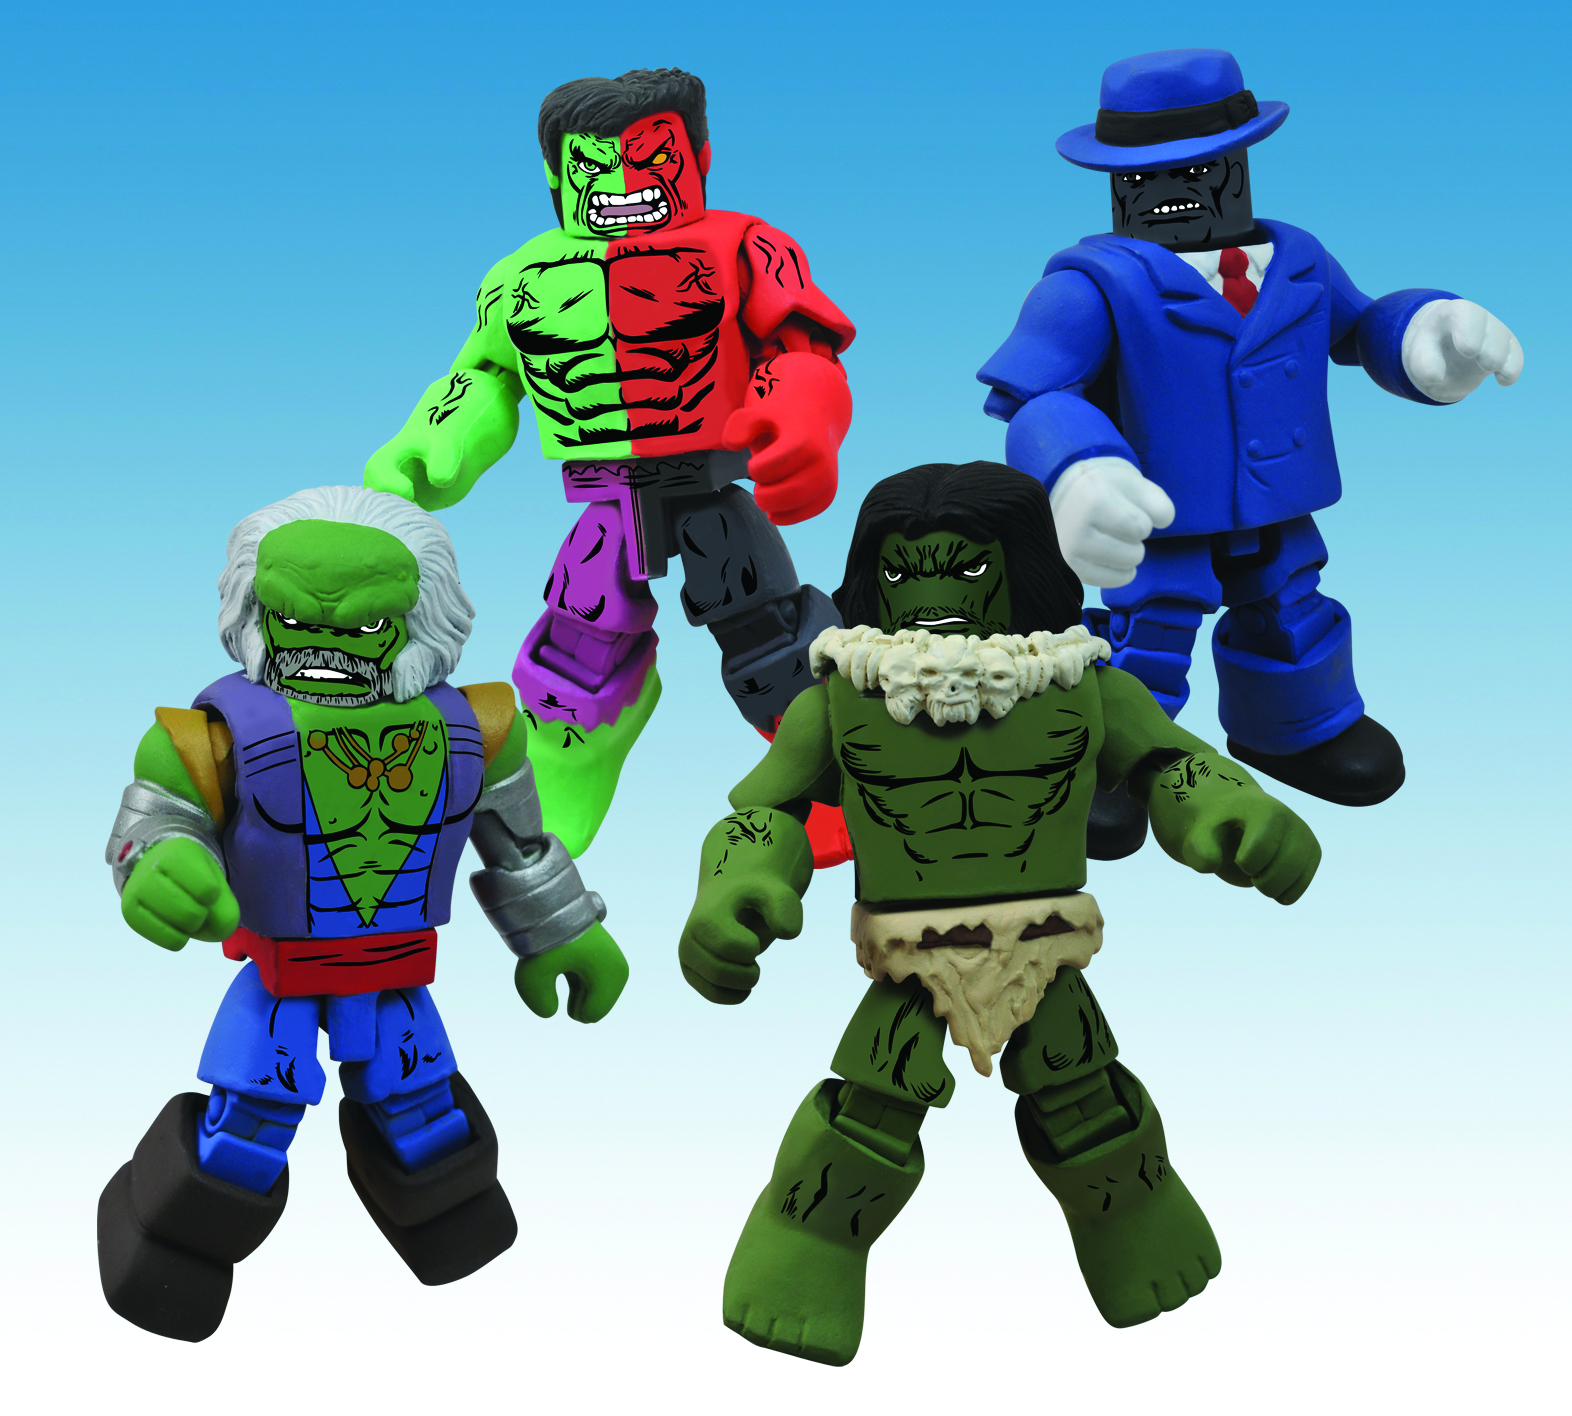 MARVEL MINIMATES HULK THROUGH THE AGES BOX SET